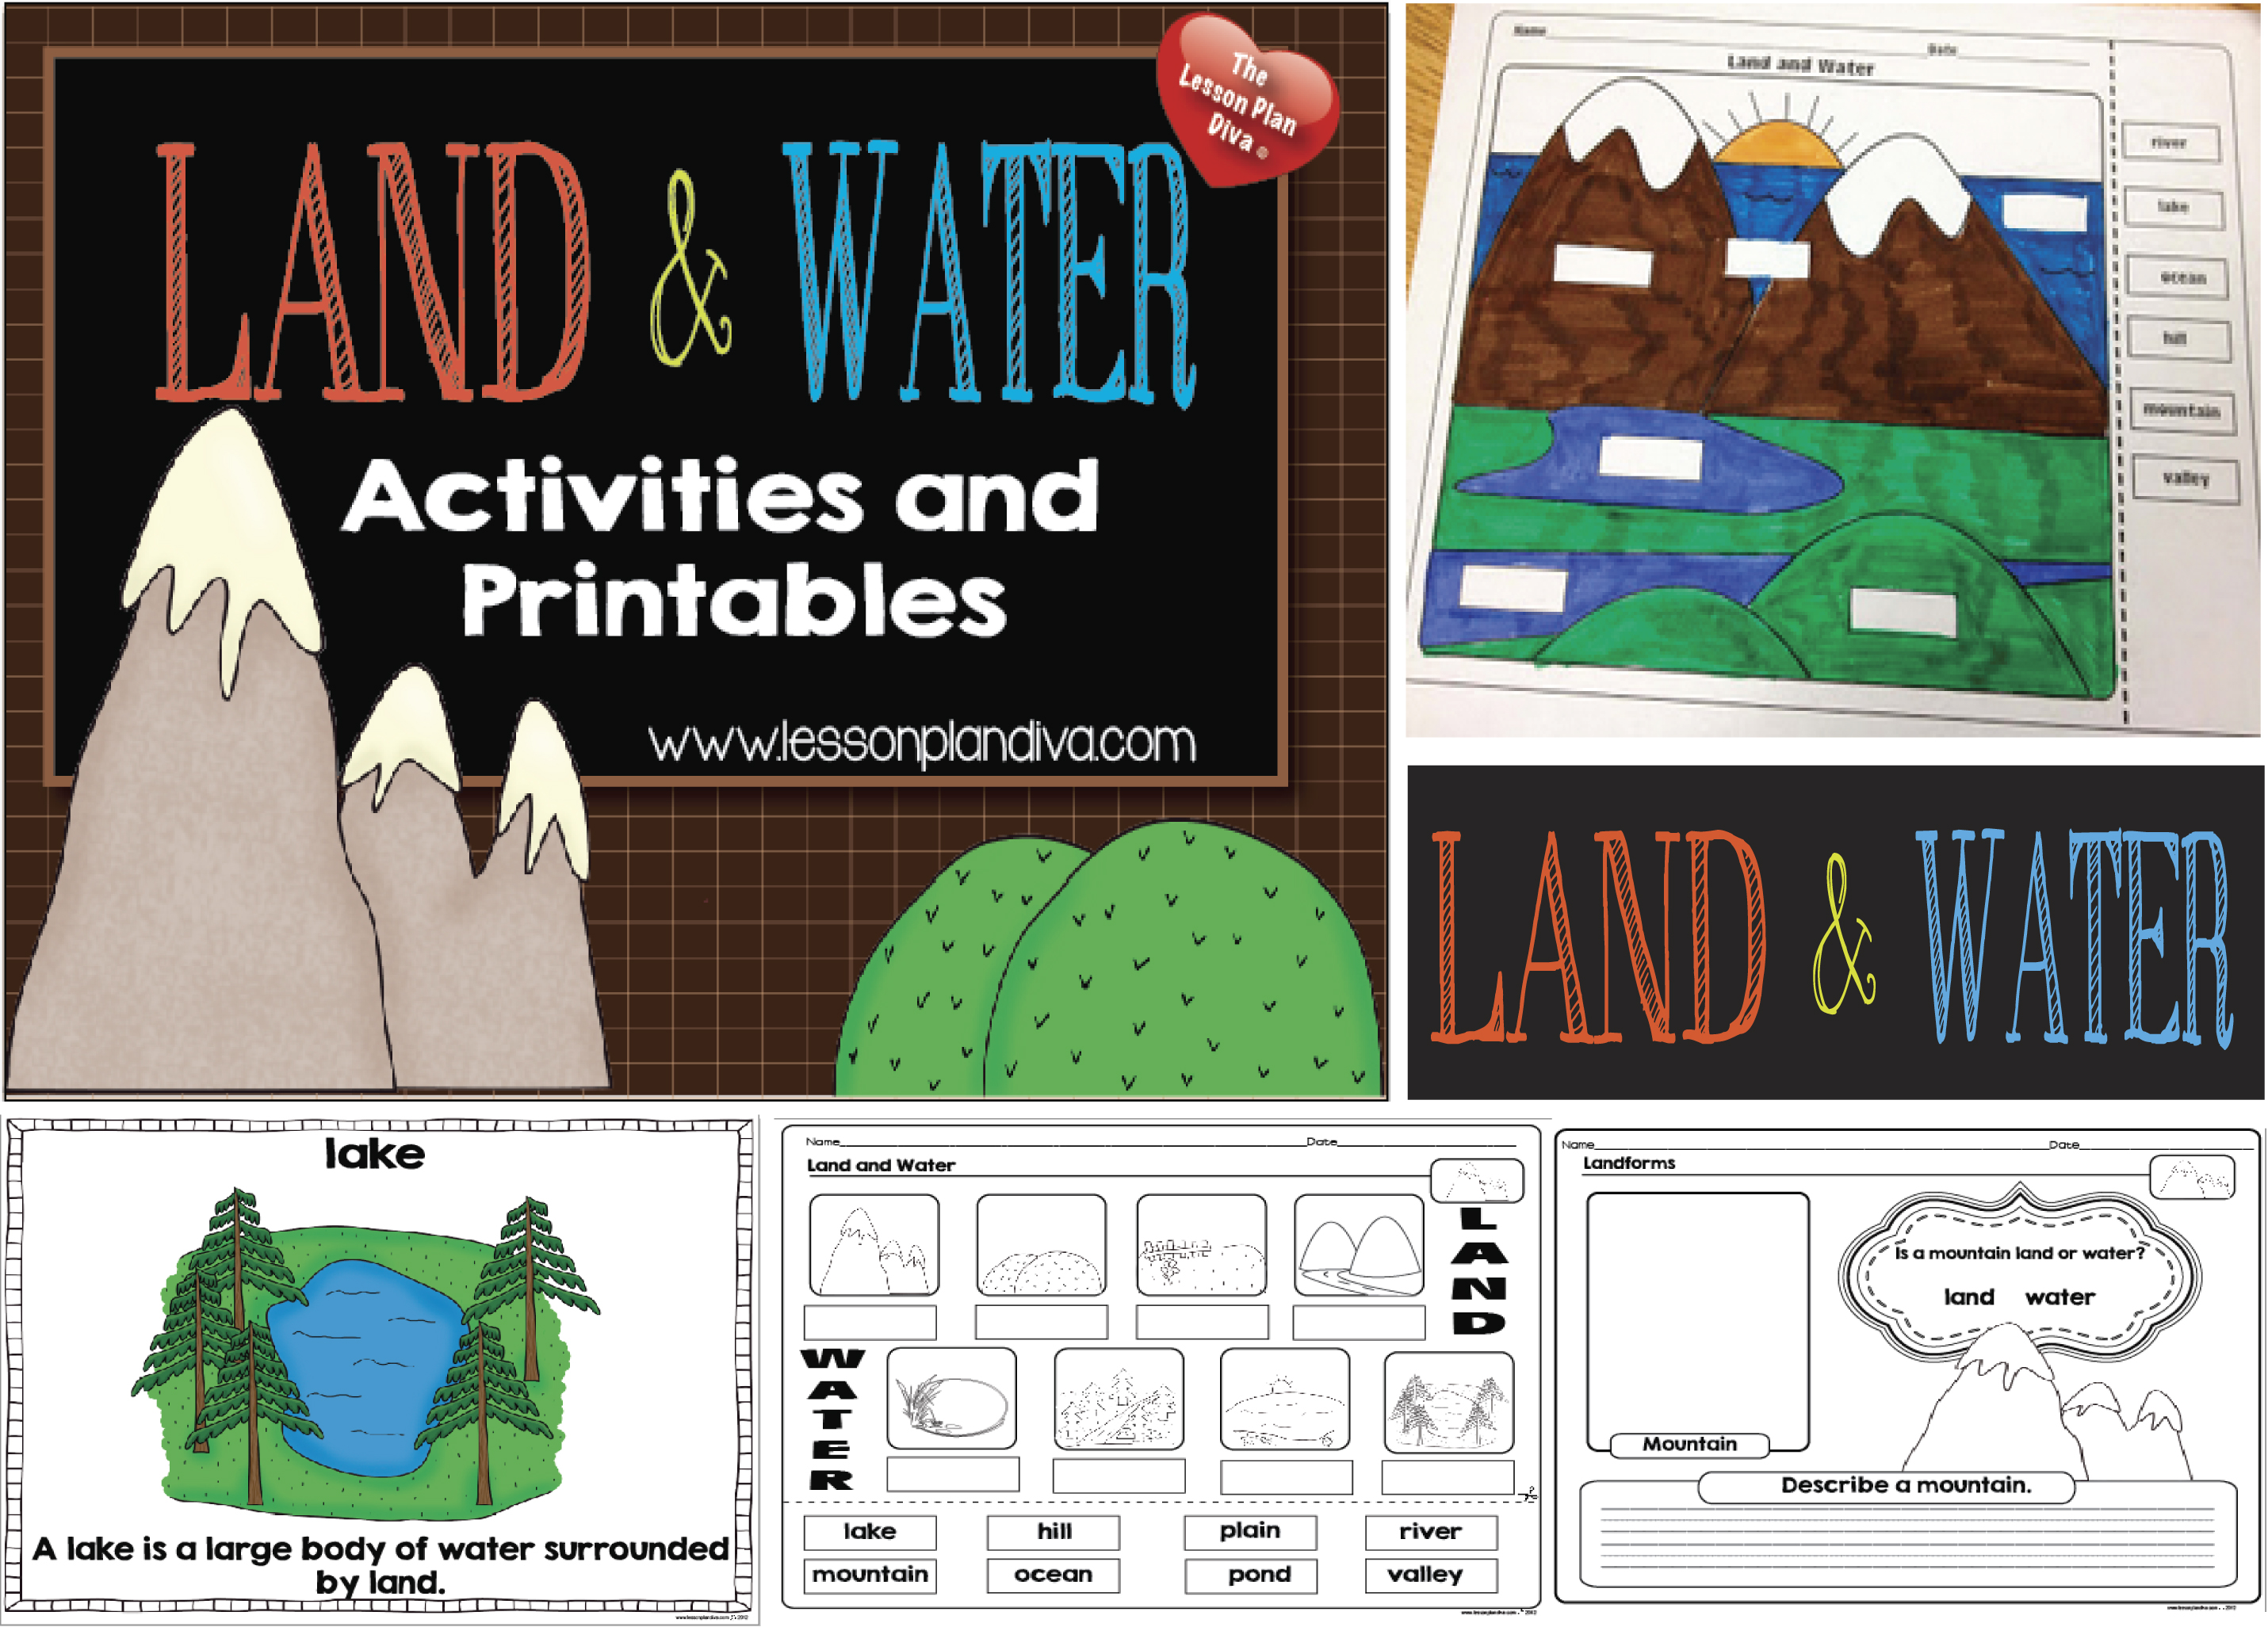 Worksheets Landforms And Bodies Of Water Worksheets landforms and bodies of water freebie the lesson plan diva landandwater